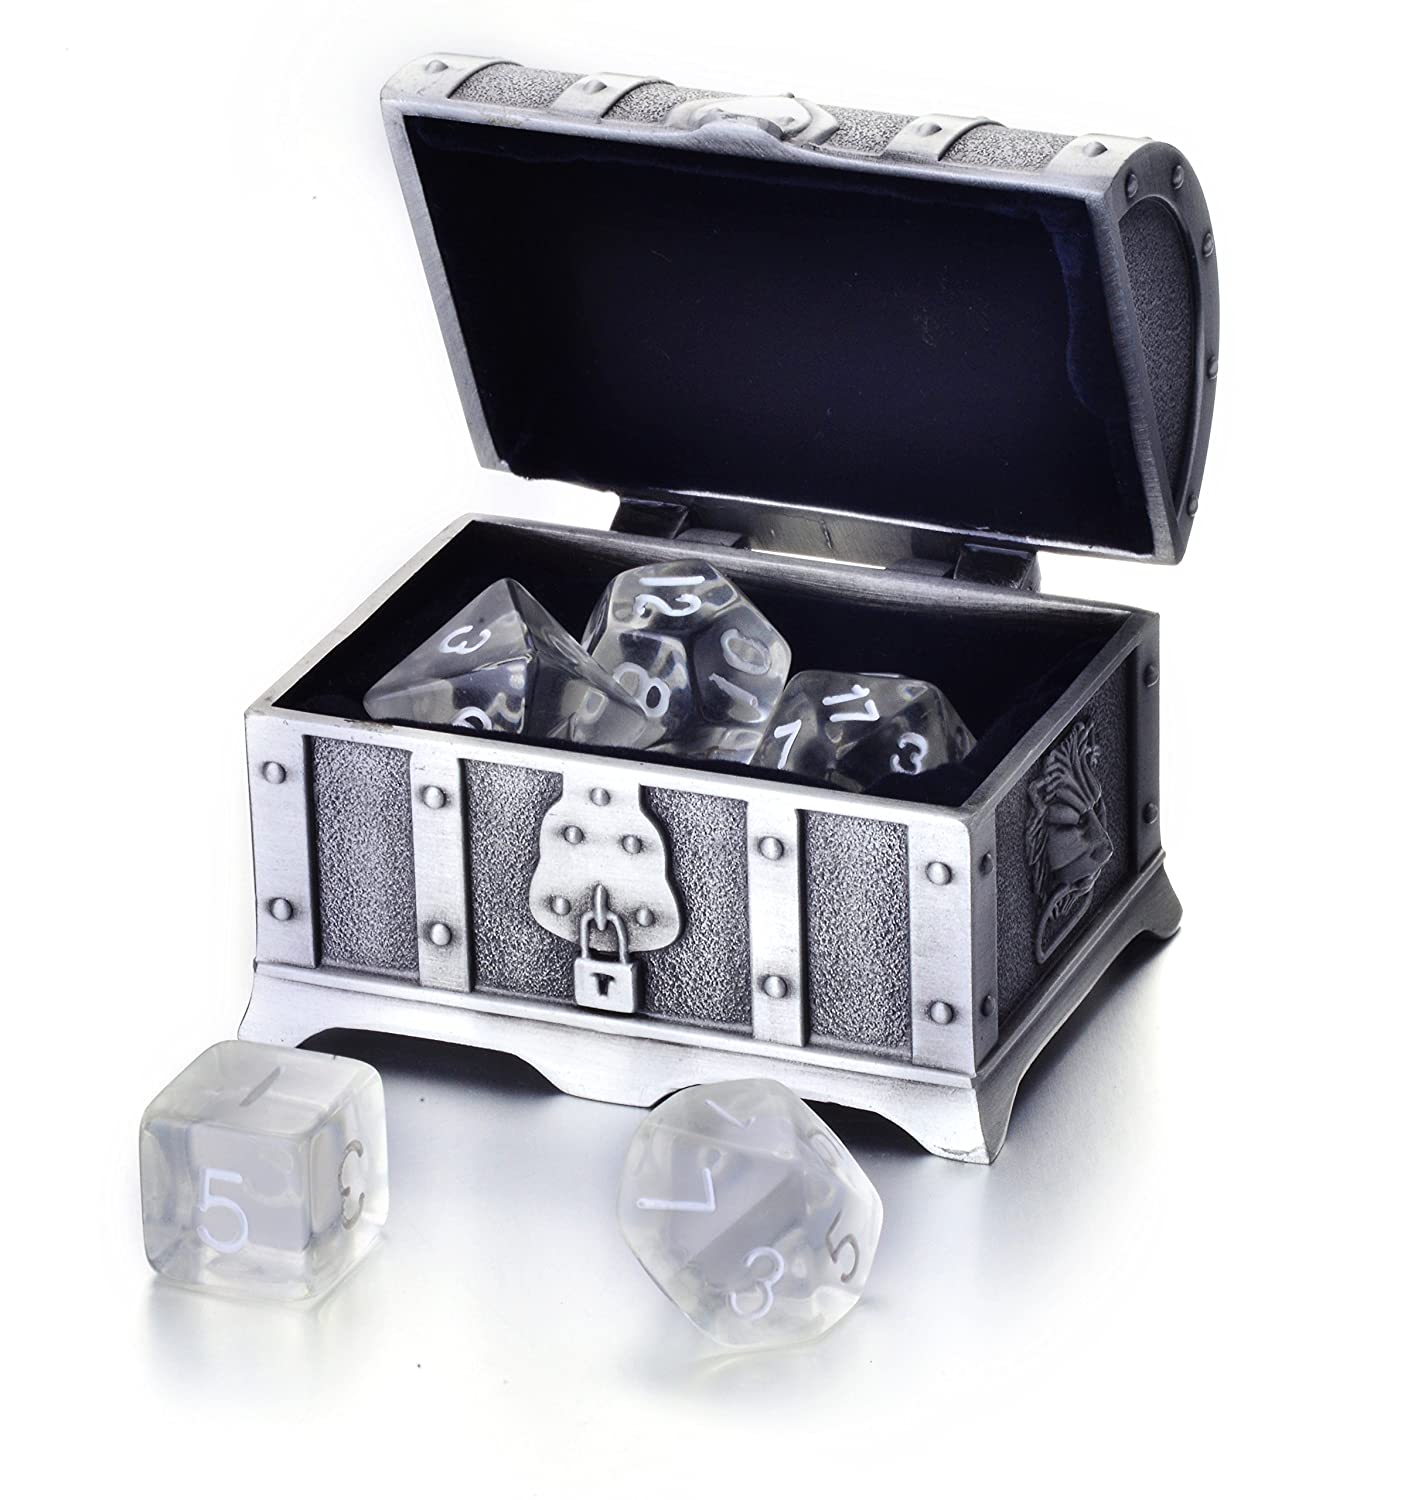 特売 Polyhedral Dice 7-Die B073WLLS6R Set w (Transparent/Treasure Chest (Transparent Clear ) ) B073WLLS6R, 全てのアイテム:6e9a5fd8 --- hohpartnership-com.access.secure-ssl-servers.biz